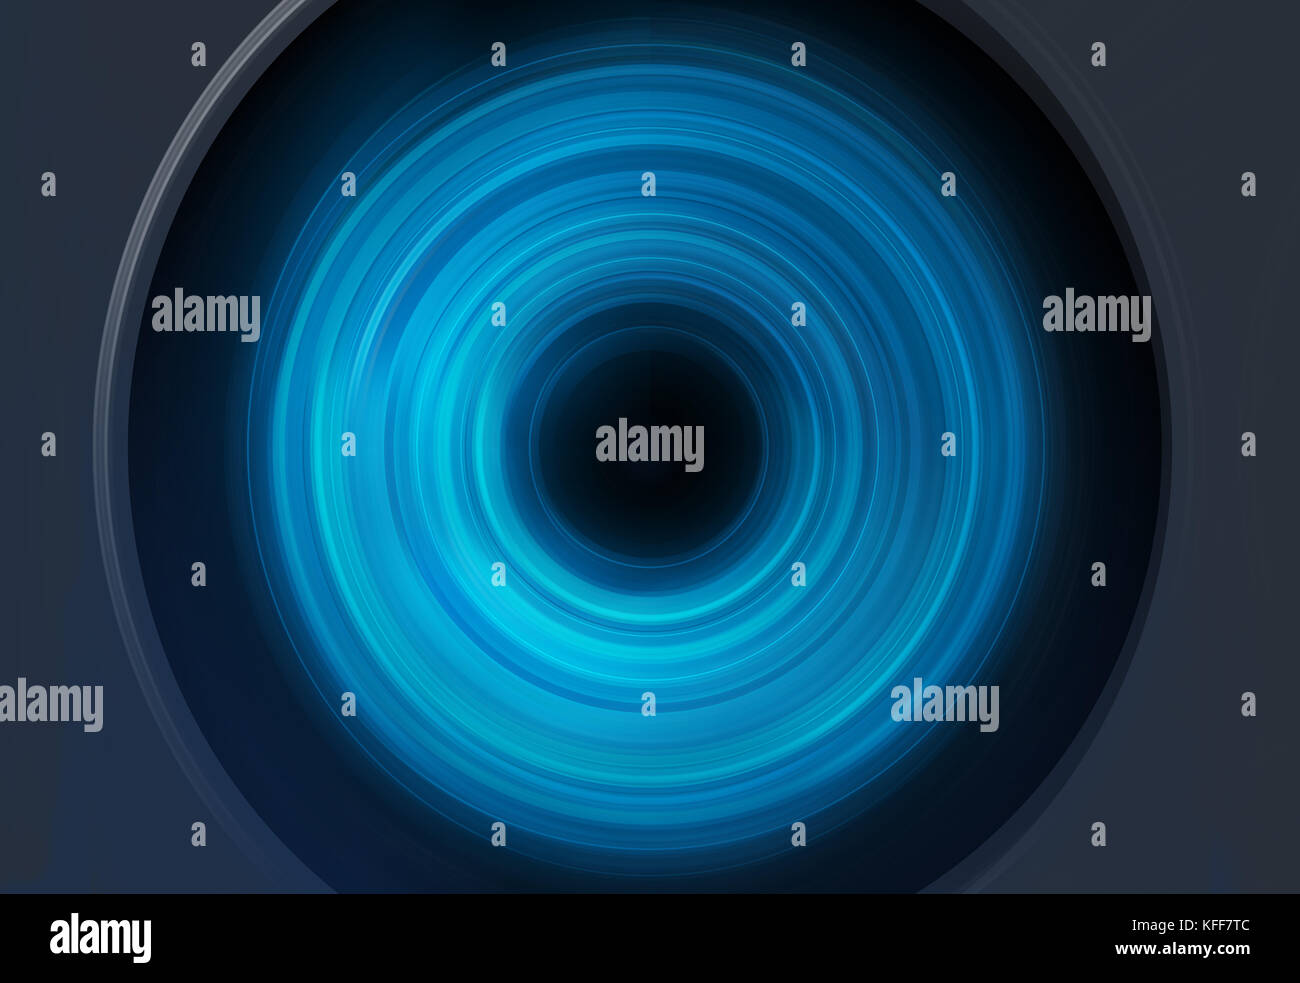 Abstract blue spin circles background with dark circle in center. - Stock Image